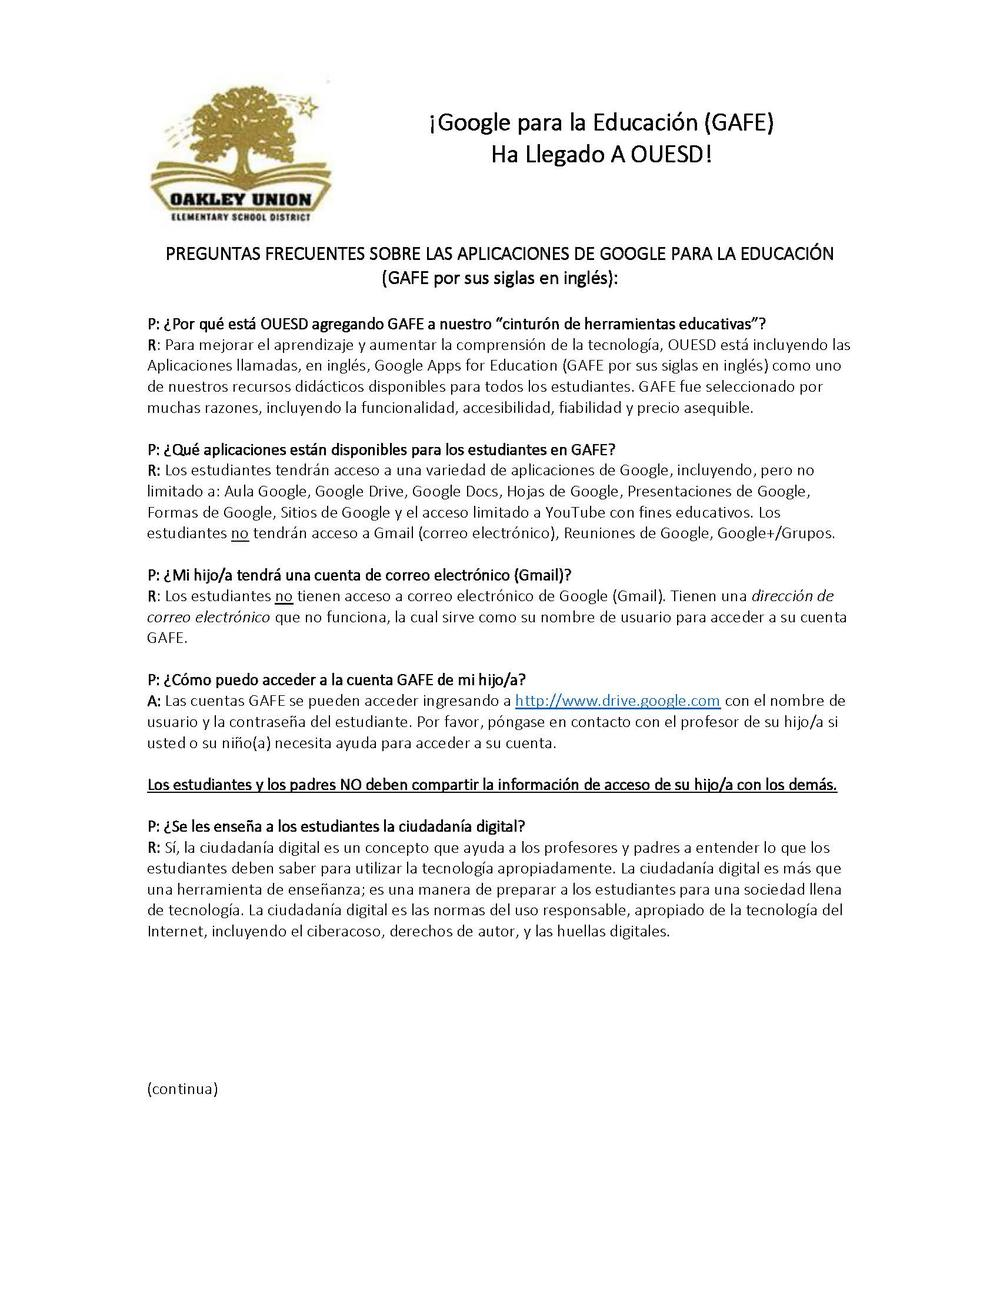 Google for Education  GAFE  Parent Letter September 2016 - Spanish Page 1